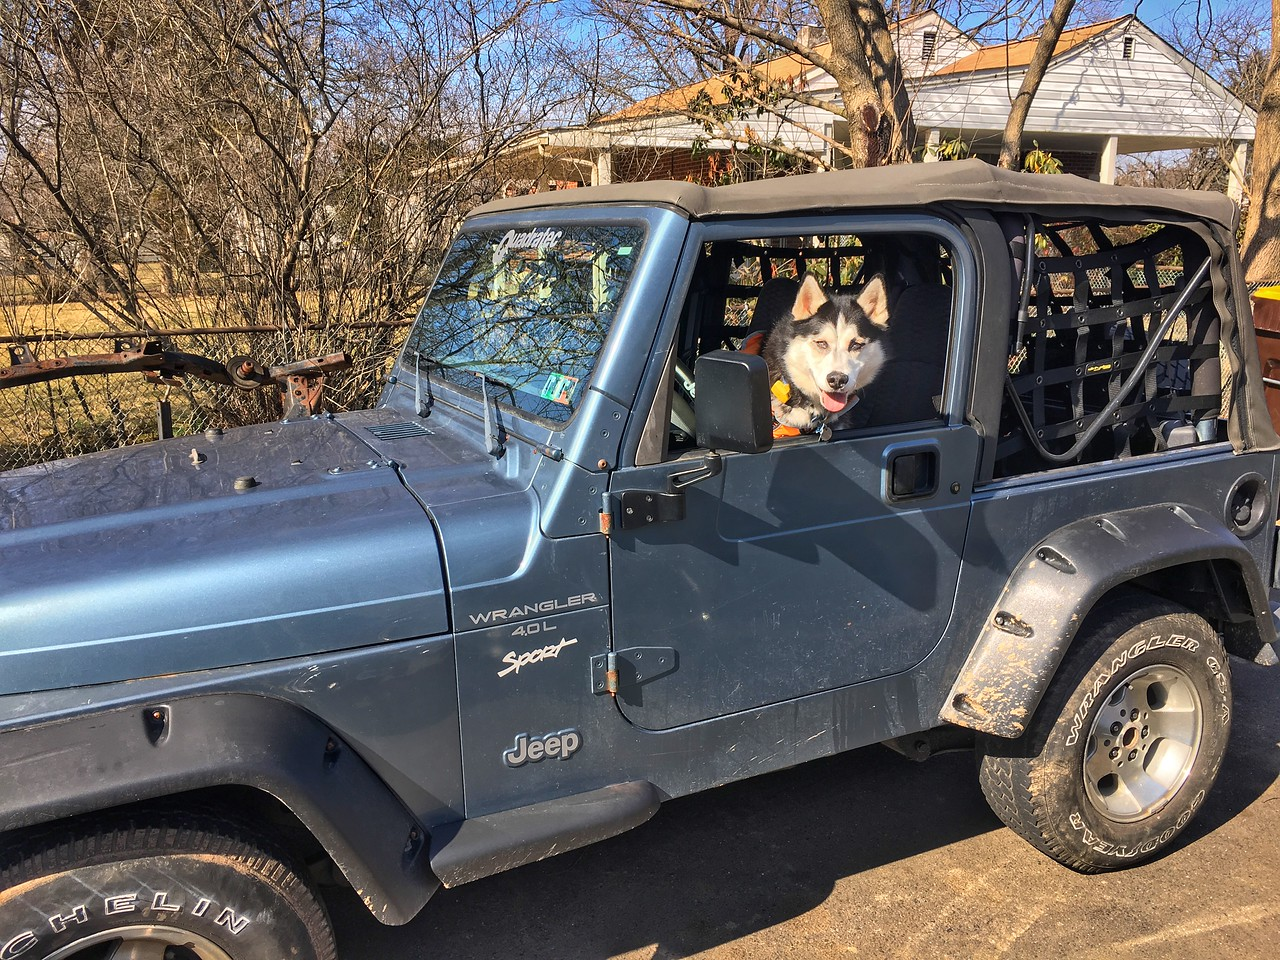 Attn: 2017 JKU owners - sunscreens and cargo nets - Jeep Wrangler Forum